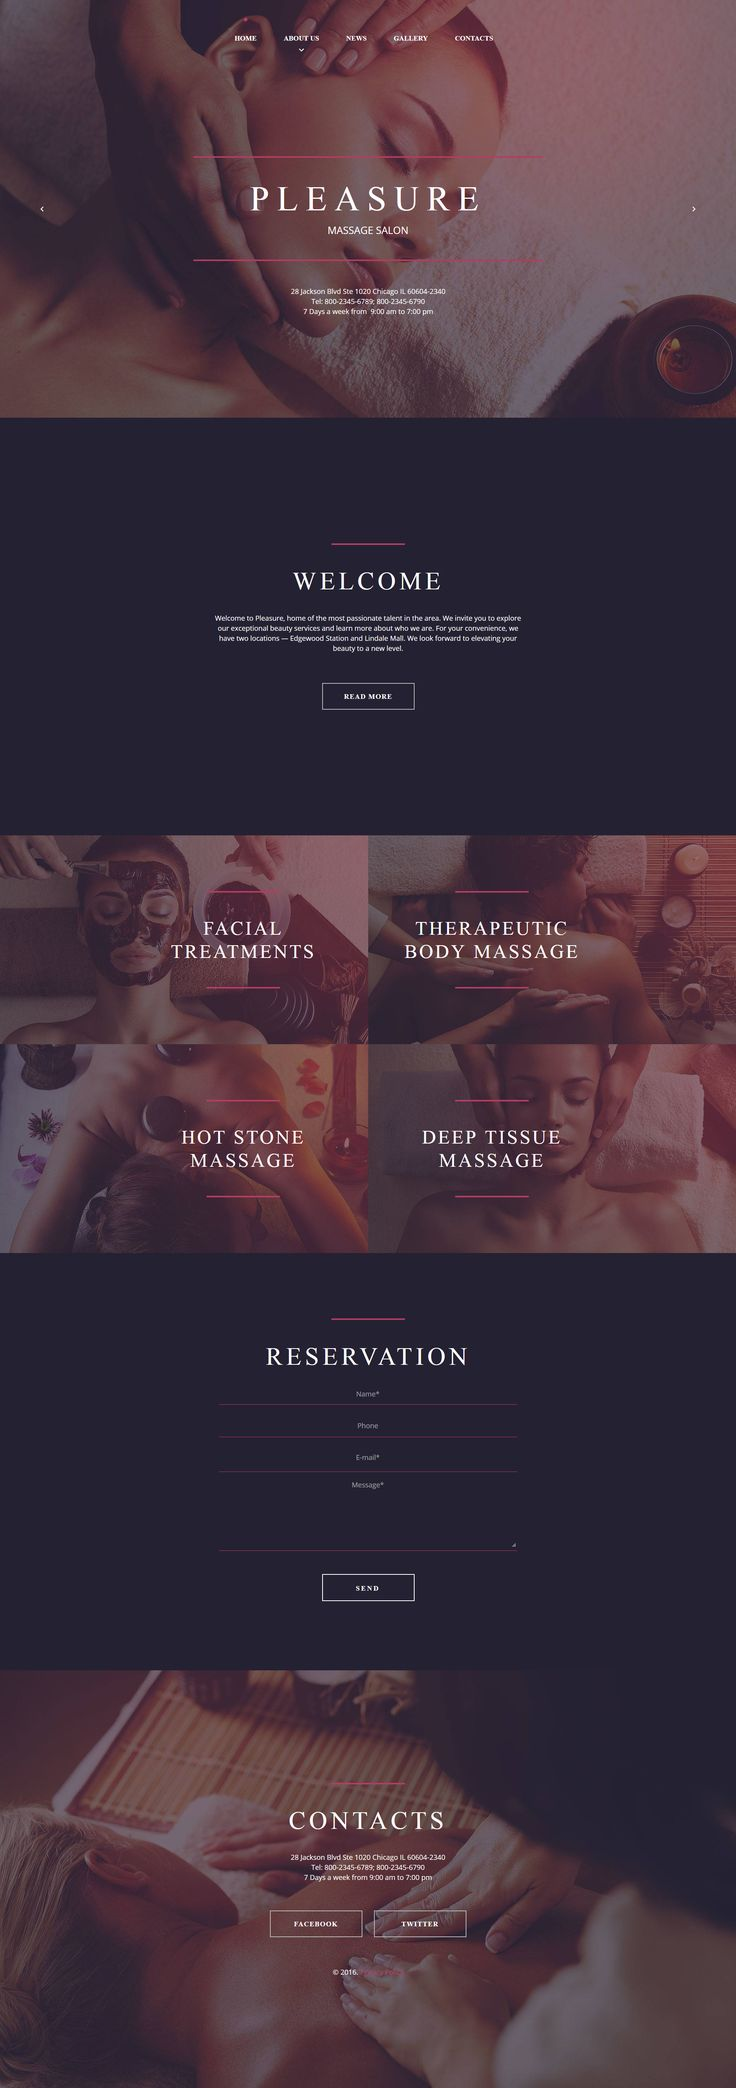 Massage Salon Moto CMS HTML Template - http://www.templatemonster.com/moto-cms-html-templates/massage-salon-moto-cms-html-template-61294.html